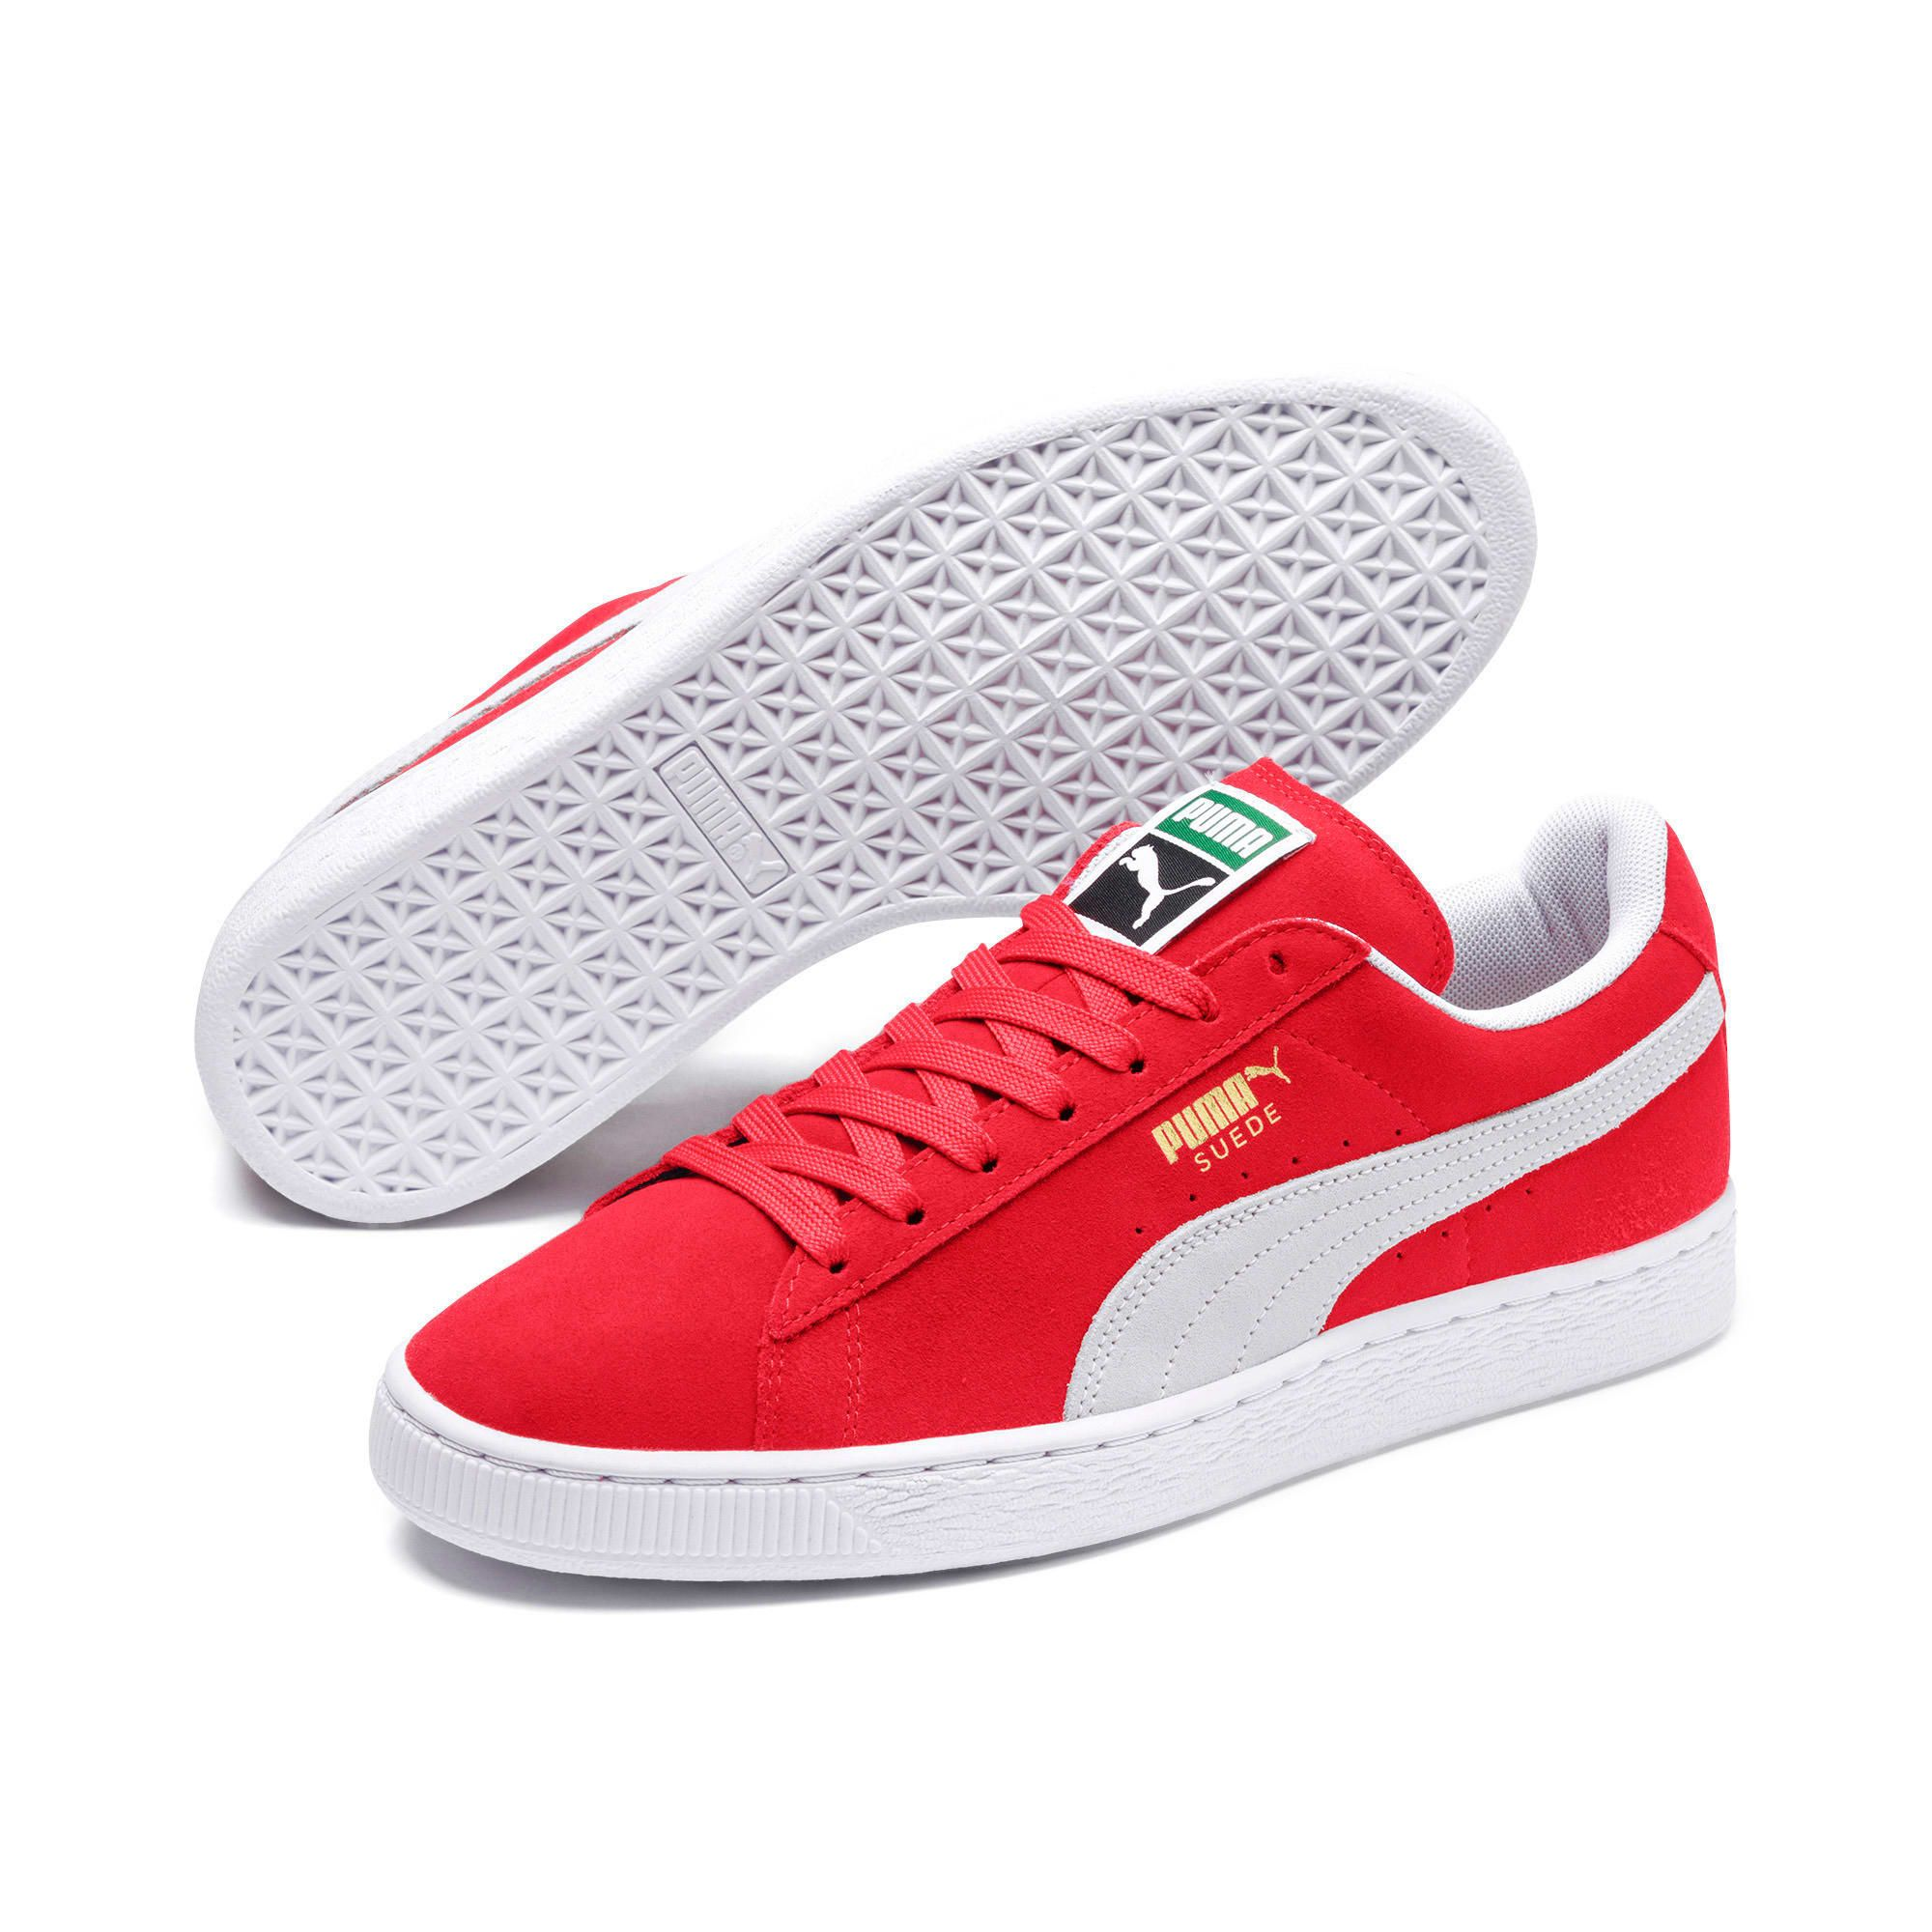 chaussure homme puma rouge